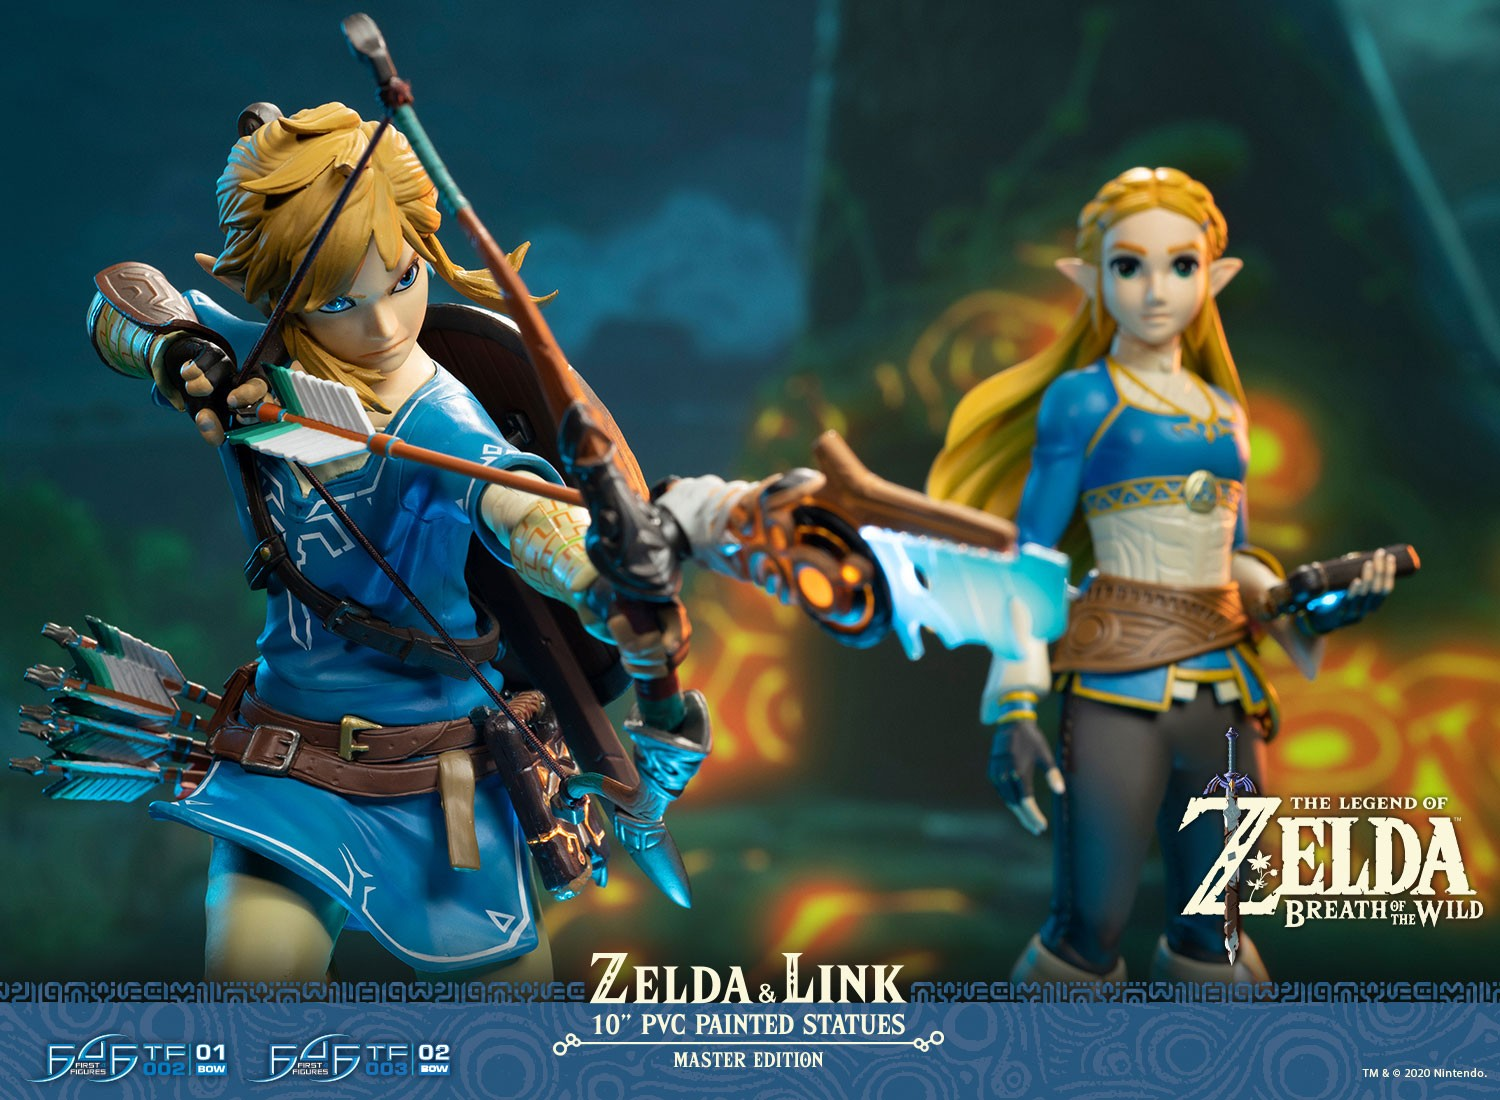 Nuove statue a tema The Legend of Zelda in pre-ordine